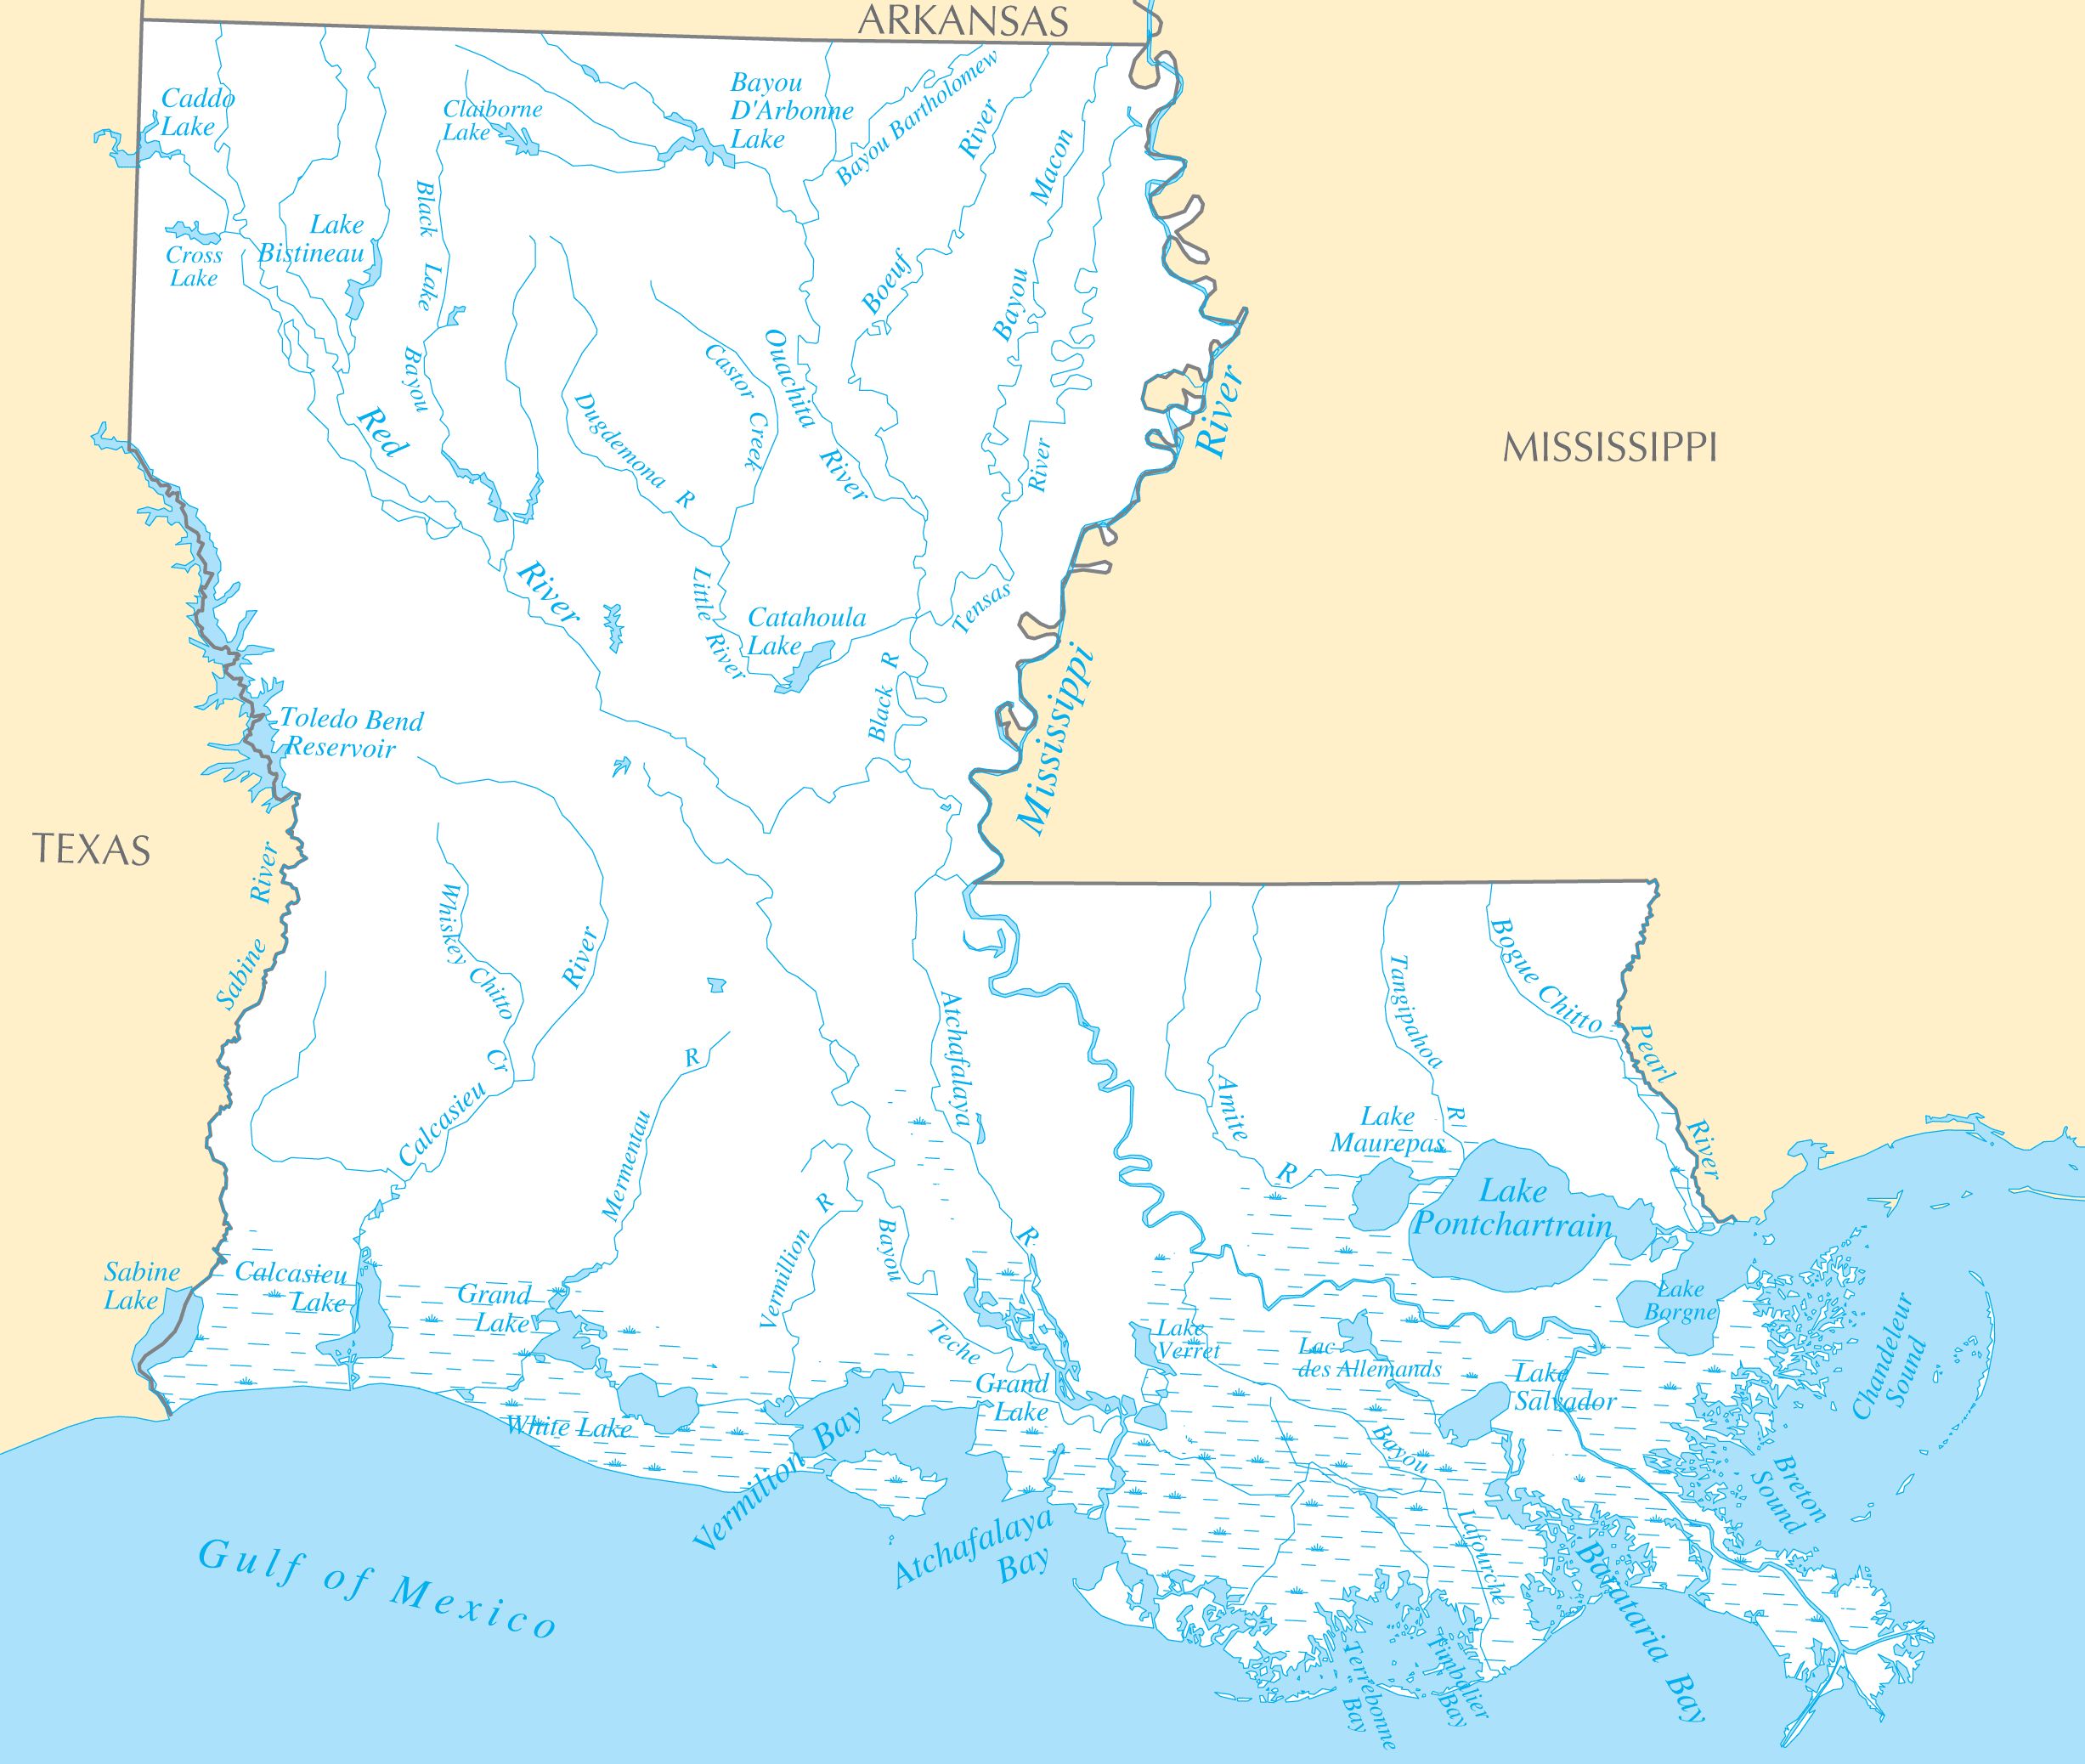 Louisiana Rivers And Lakes • Mapsof.net